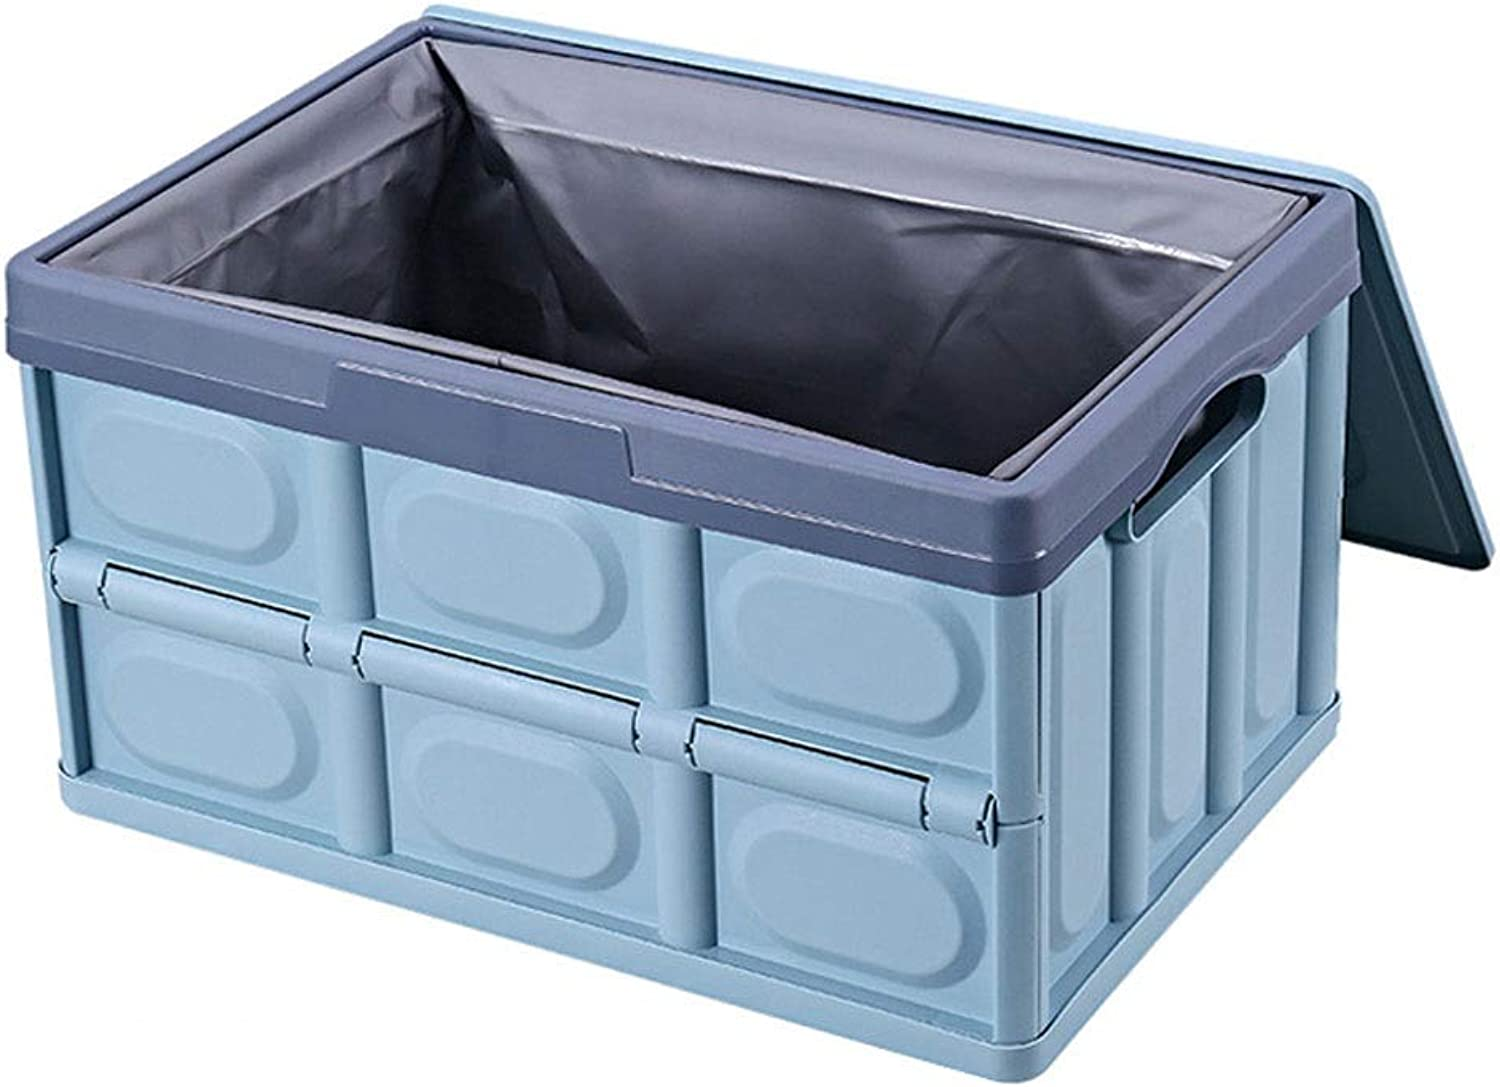 Foldable Car Trunk Storage Box Nordic Style PP Polypropylene Material Household Storage Box Makes Your Amazing Space Saving (color   bluee, Size   S)